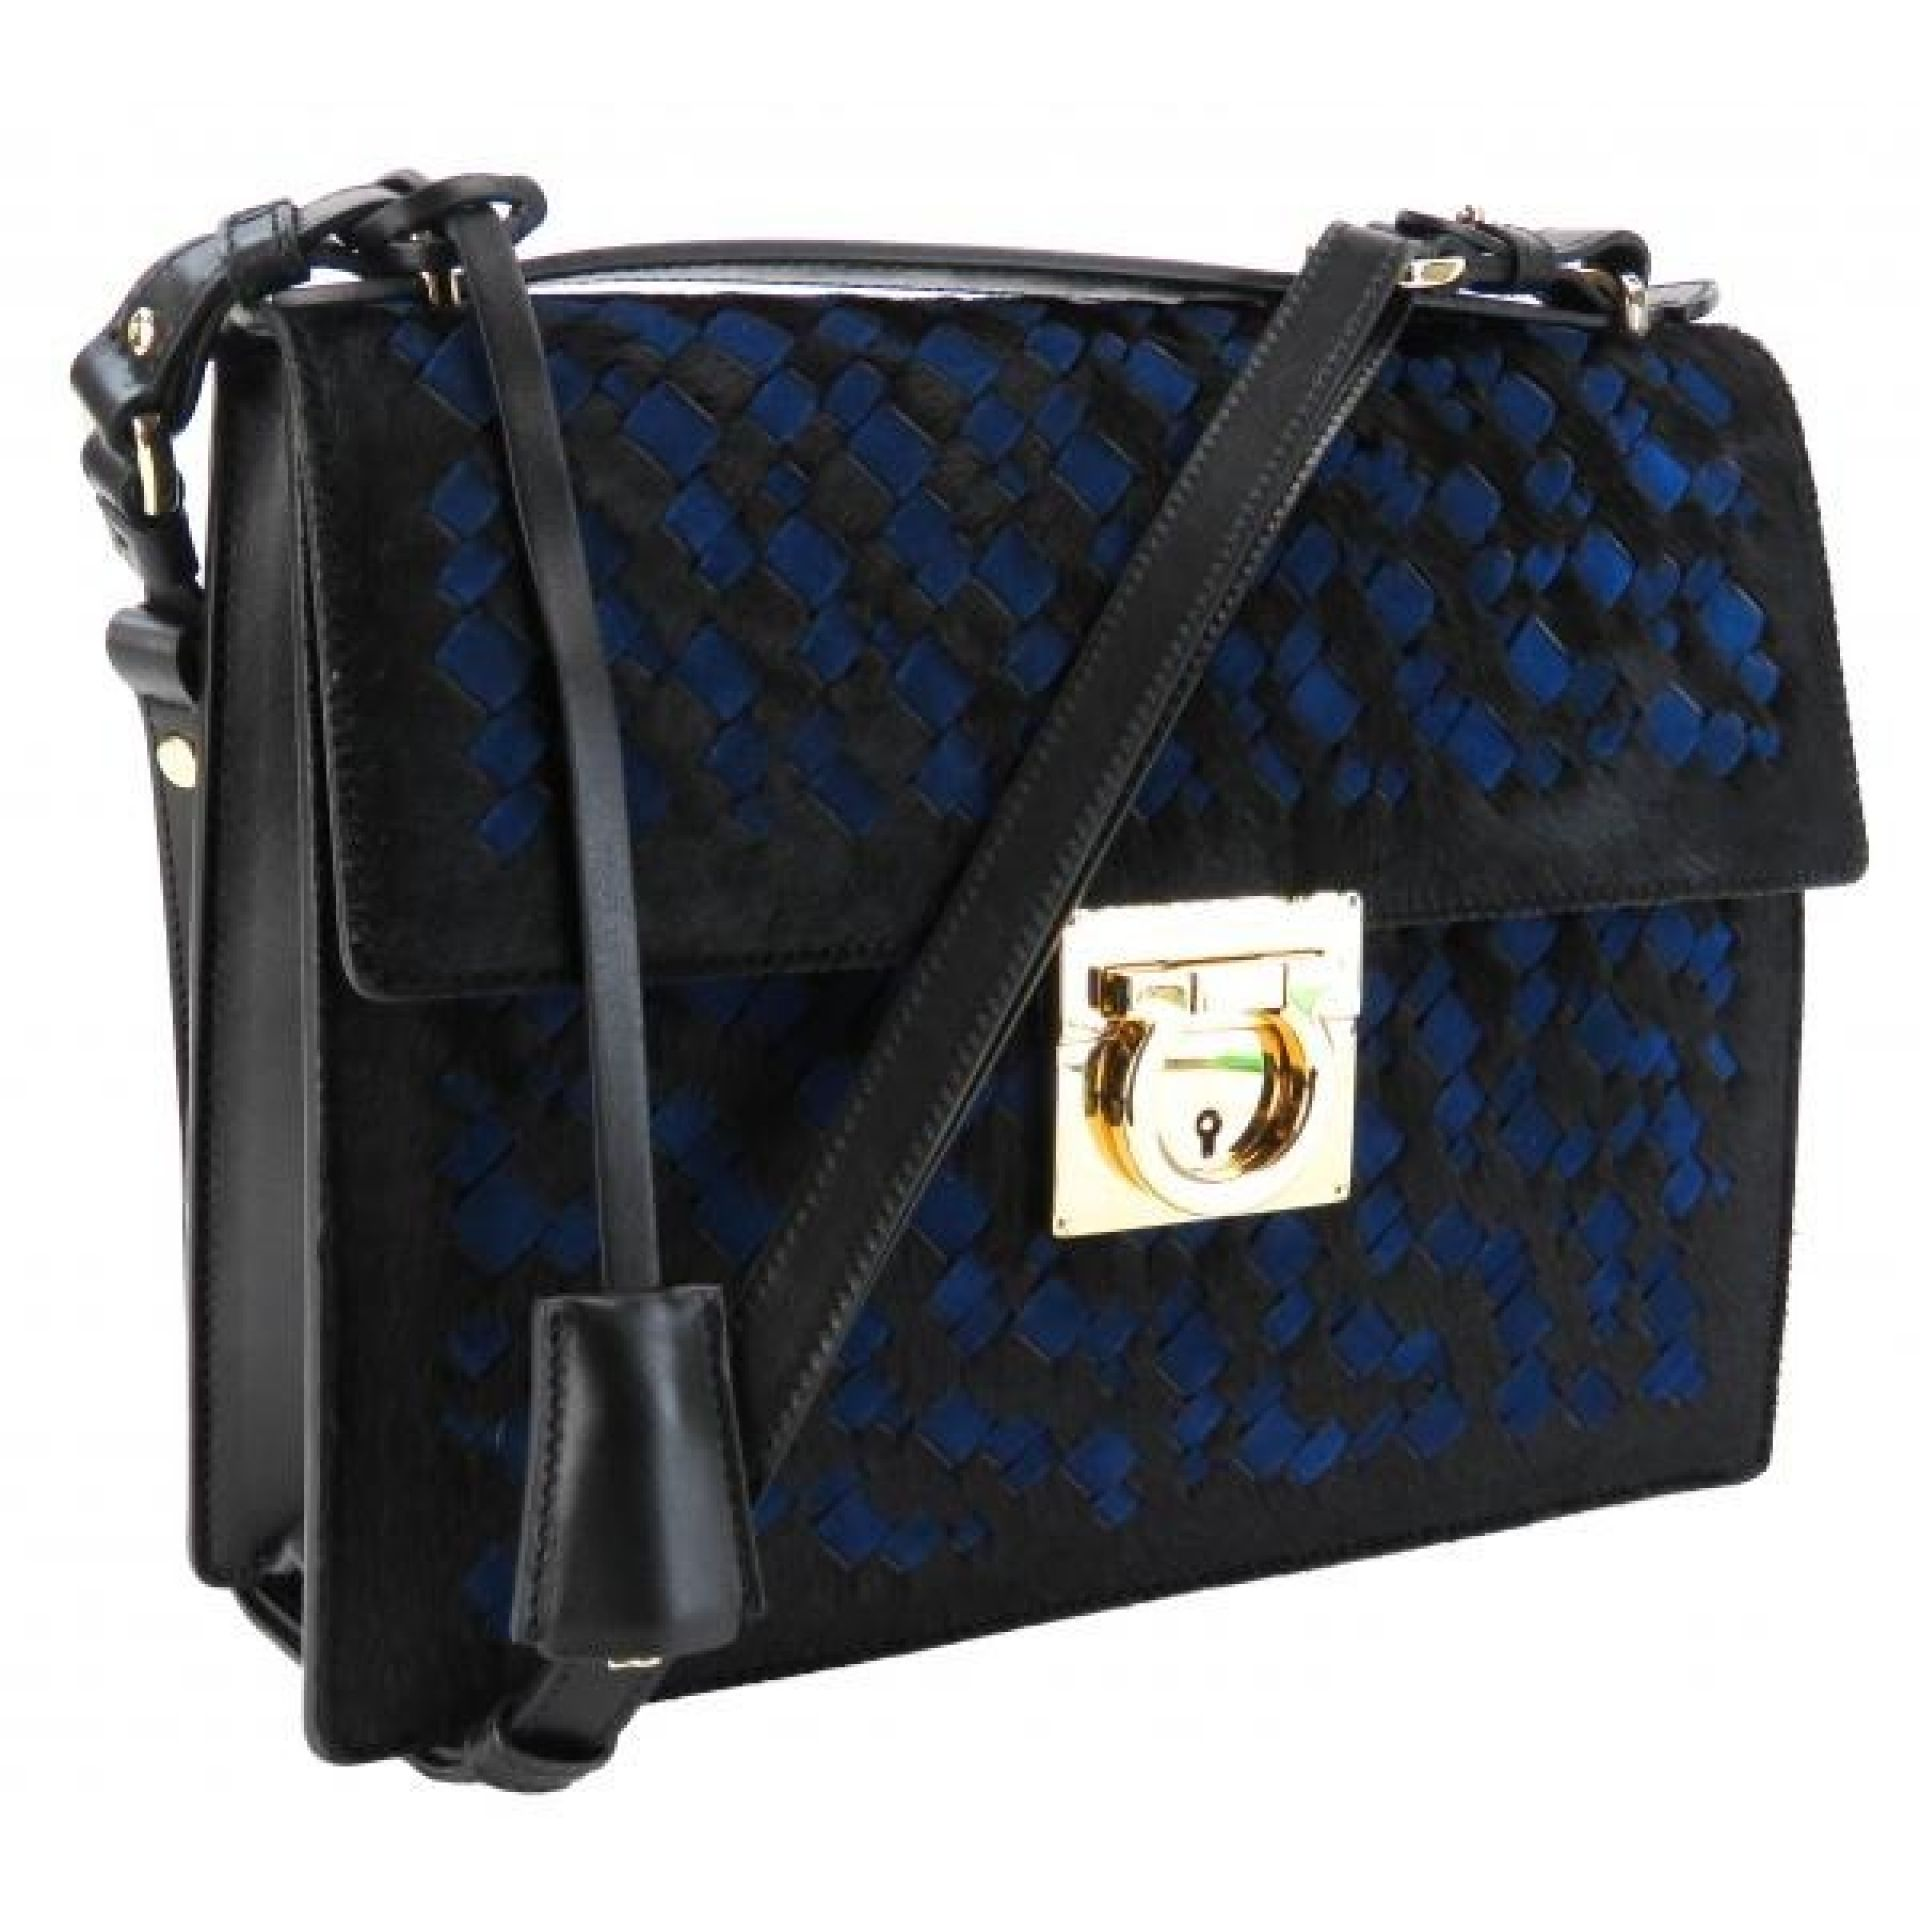 Salvatore Ferragamo Black and Blue Calf Hair Katia Top Handle Shoulder Bag